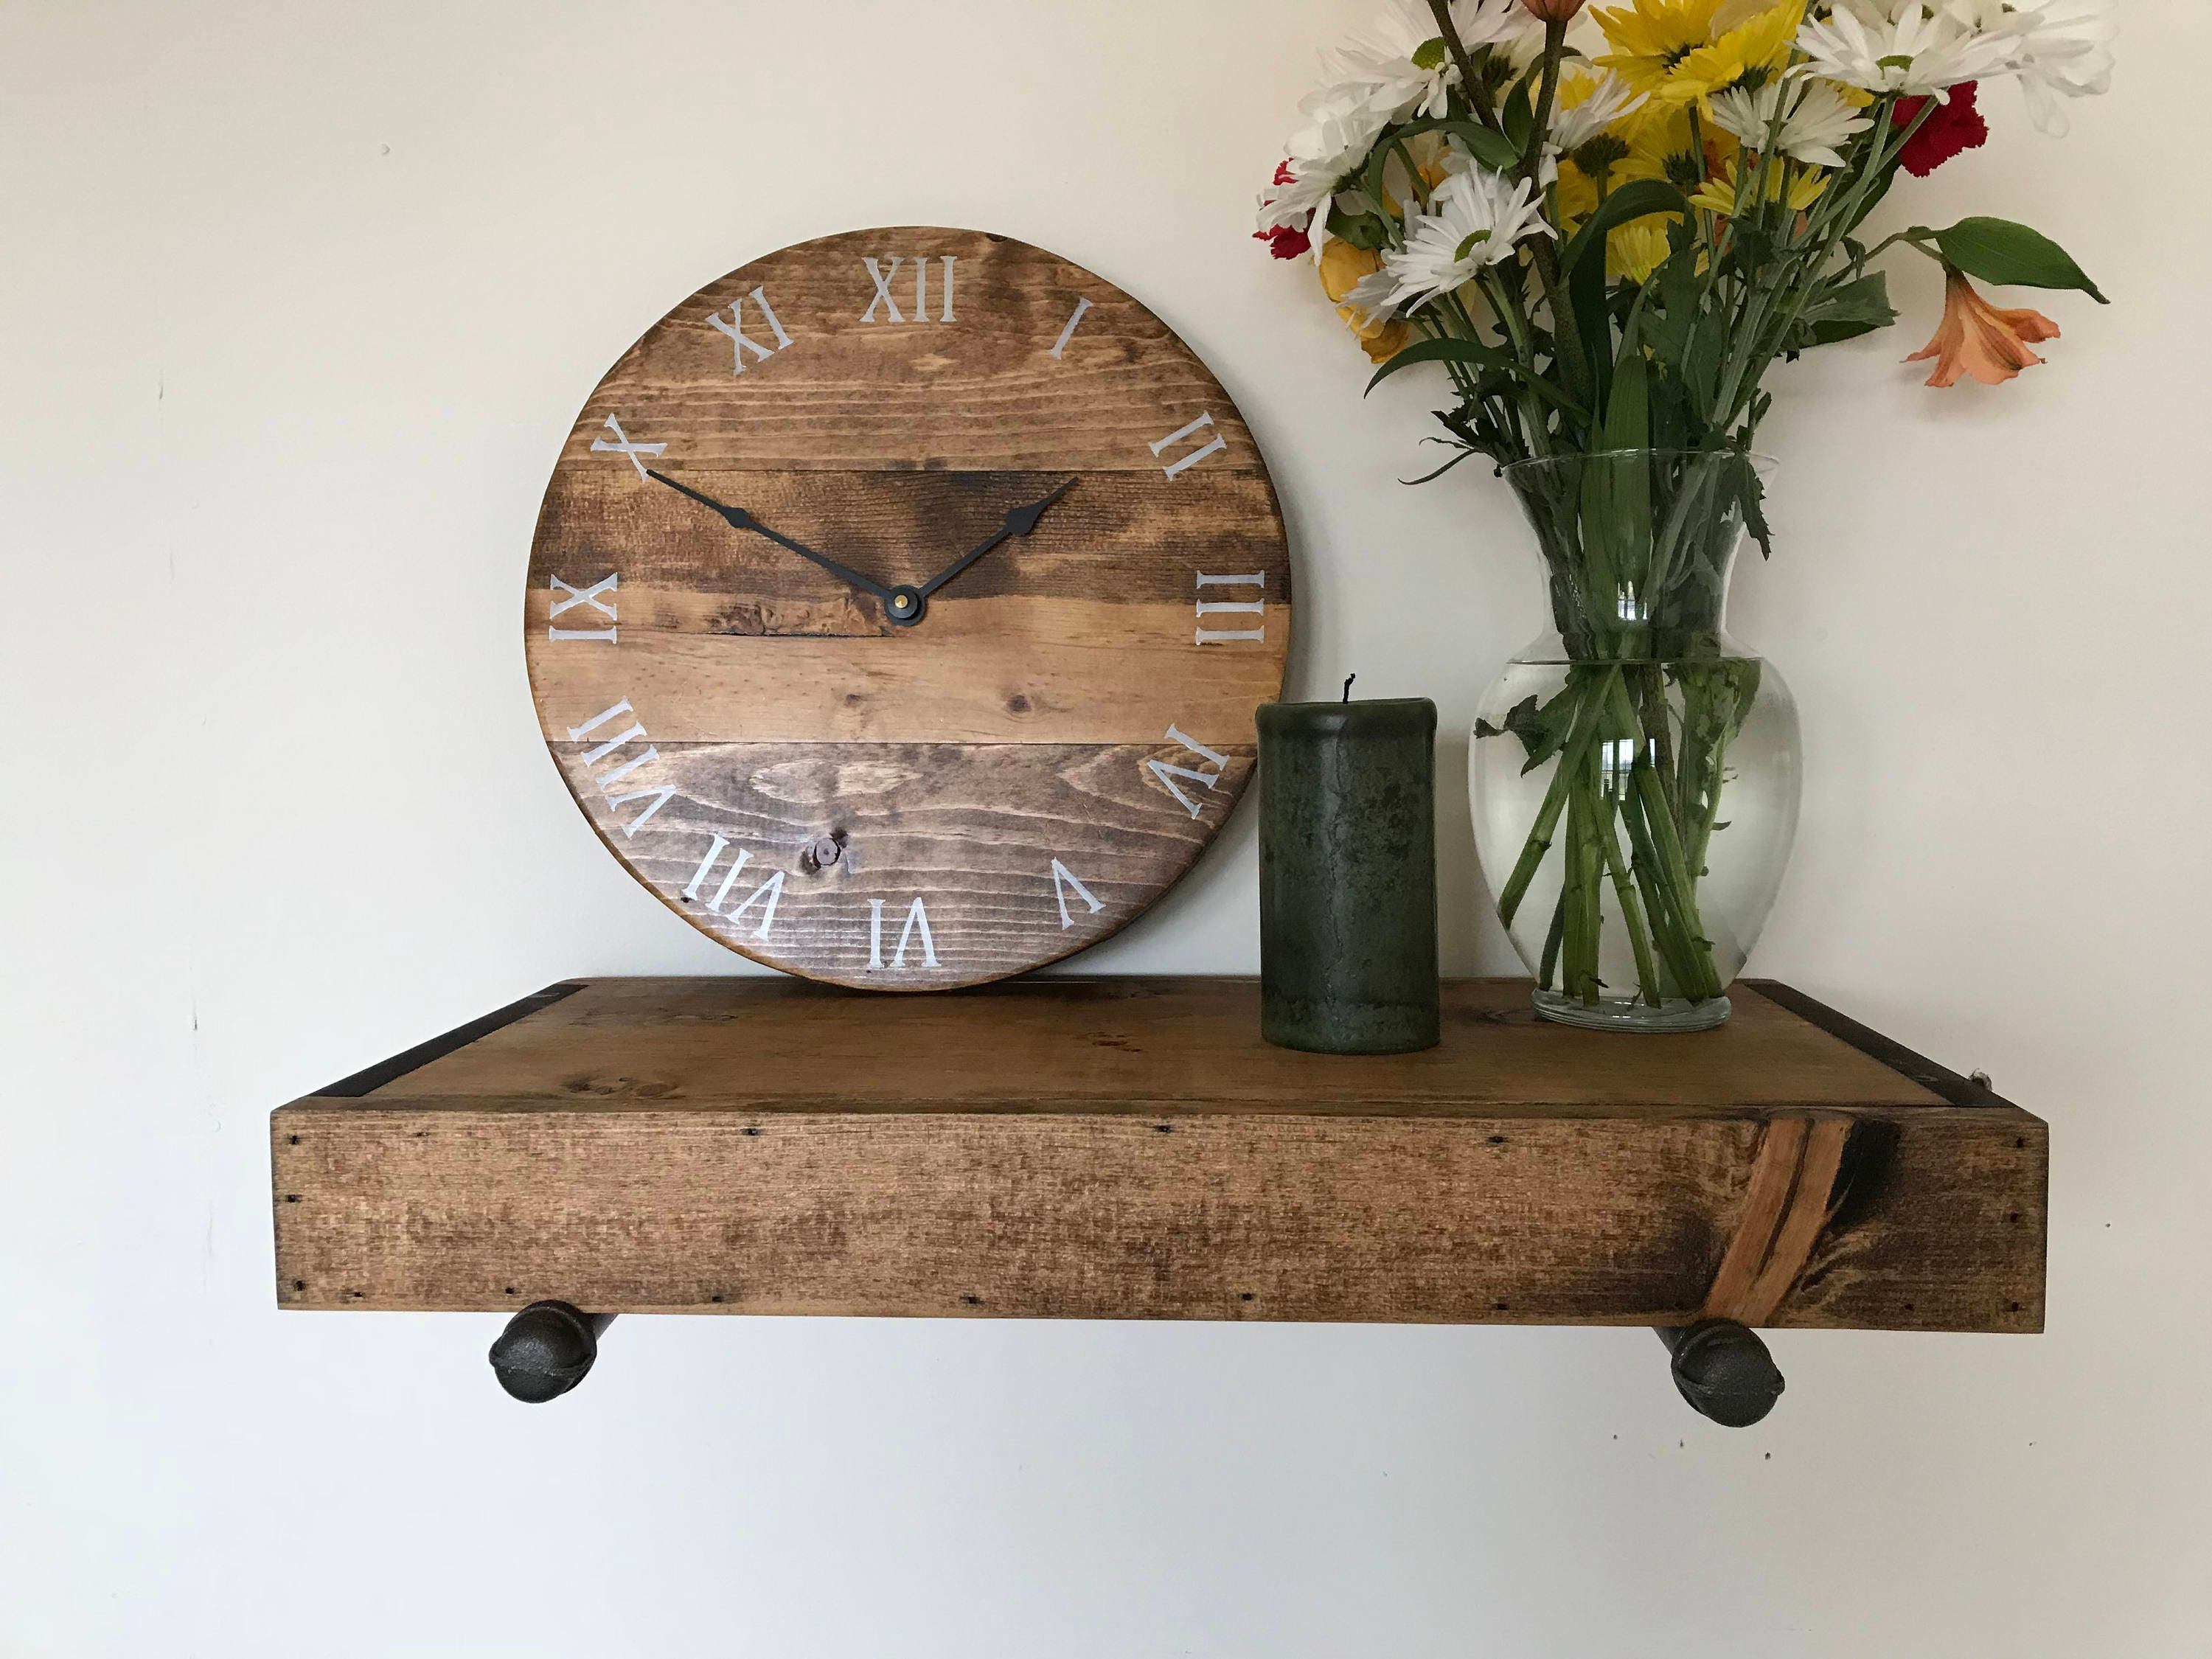 Rustic industrial style shelf handmade rustic shelf rustic shelves rustic wood